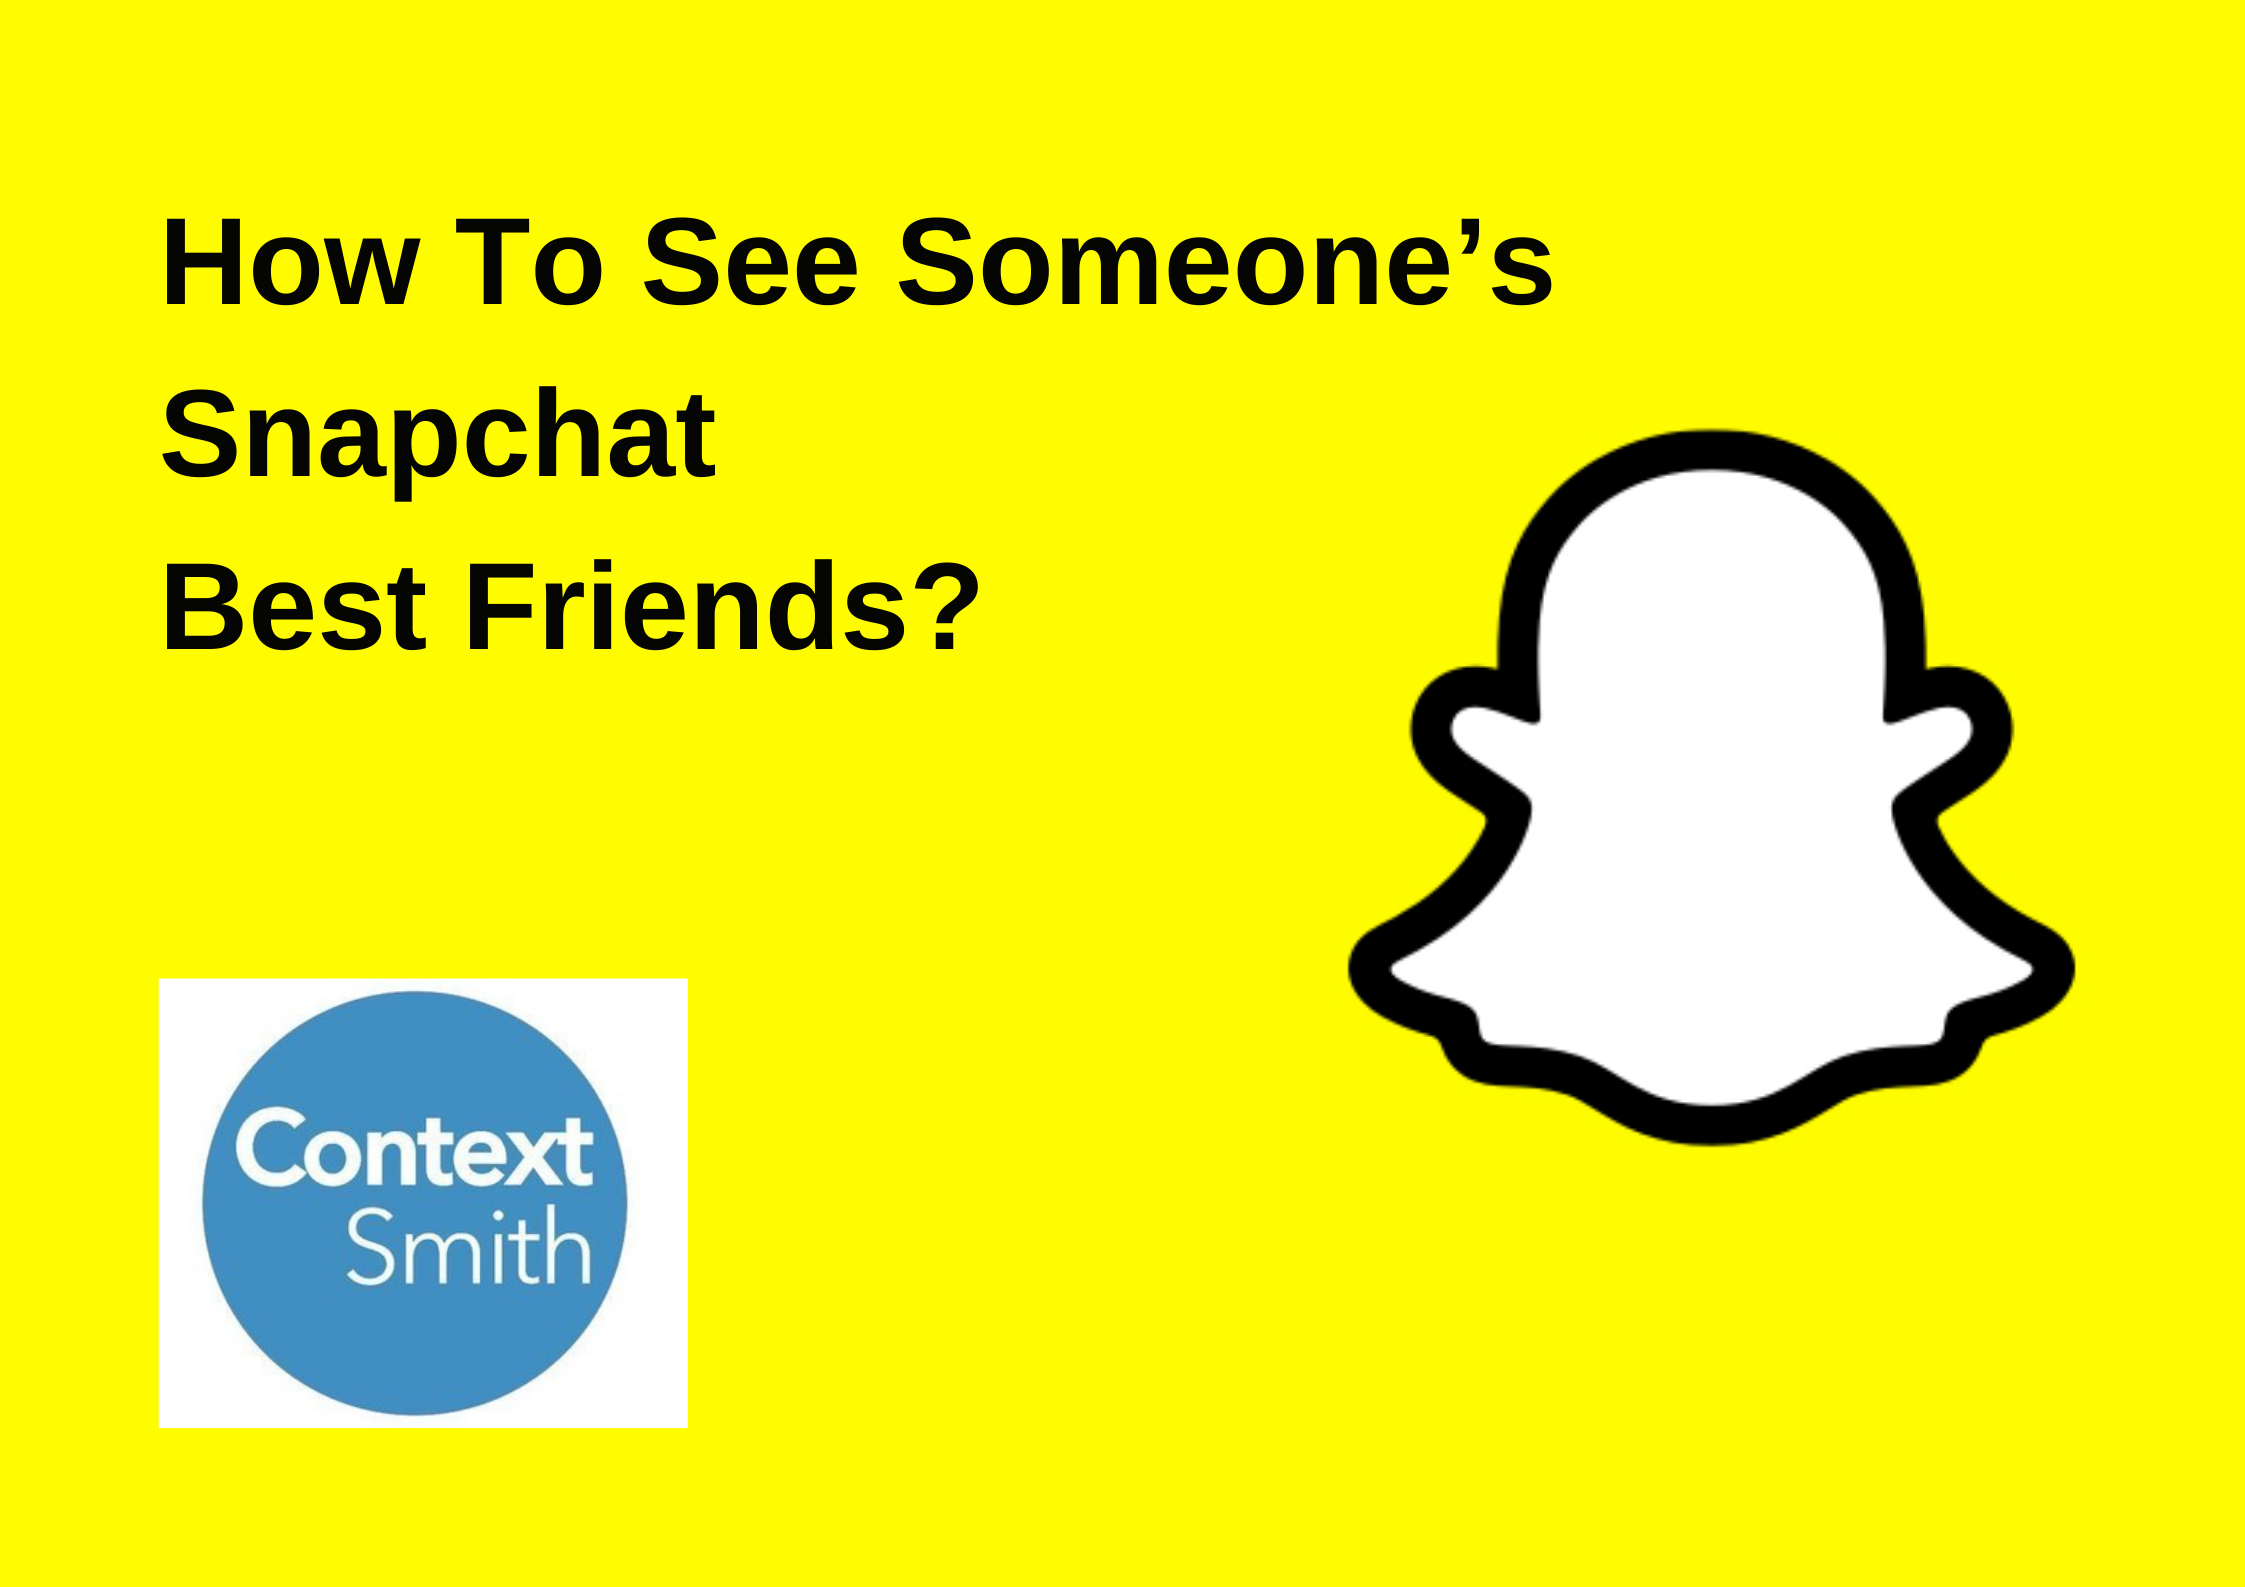 How To See Someone's Snapchat Best Friends In 2021